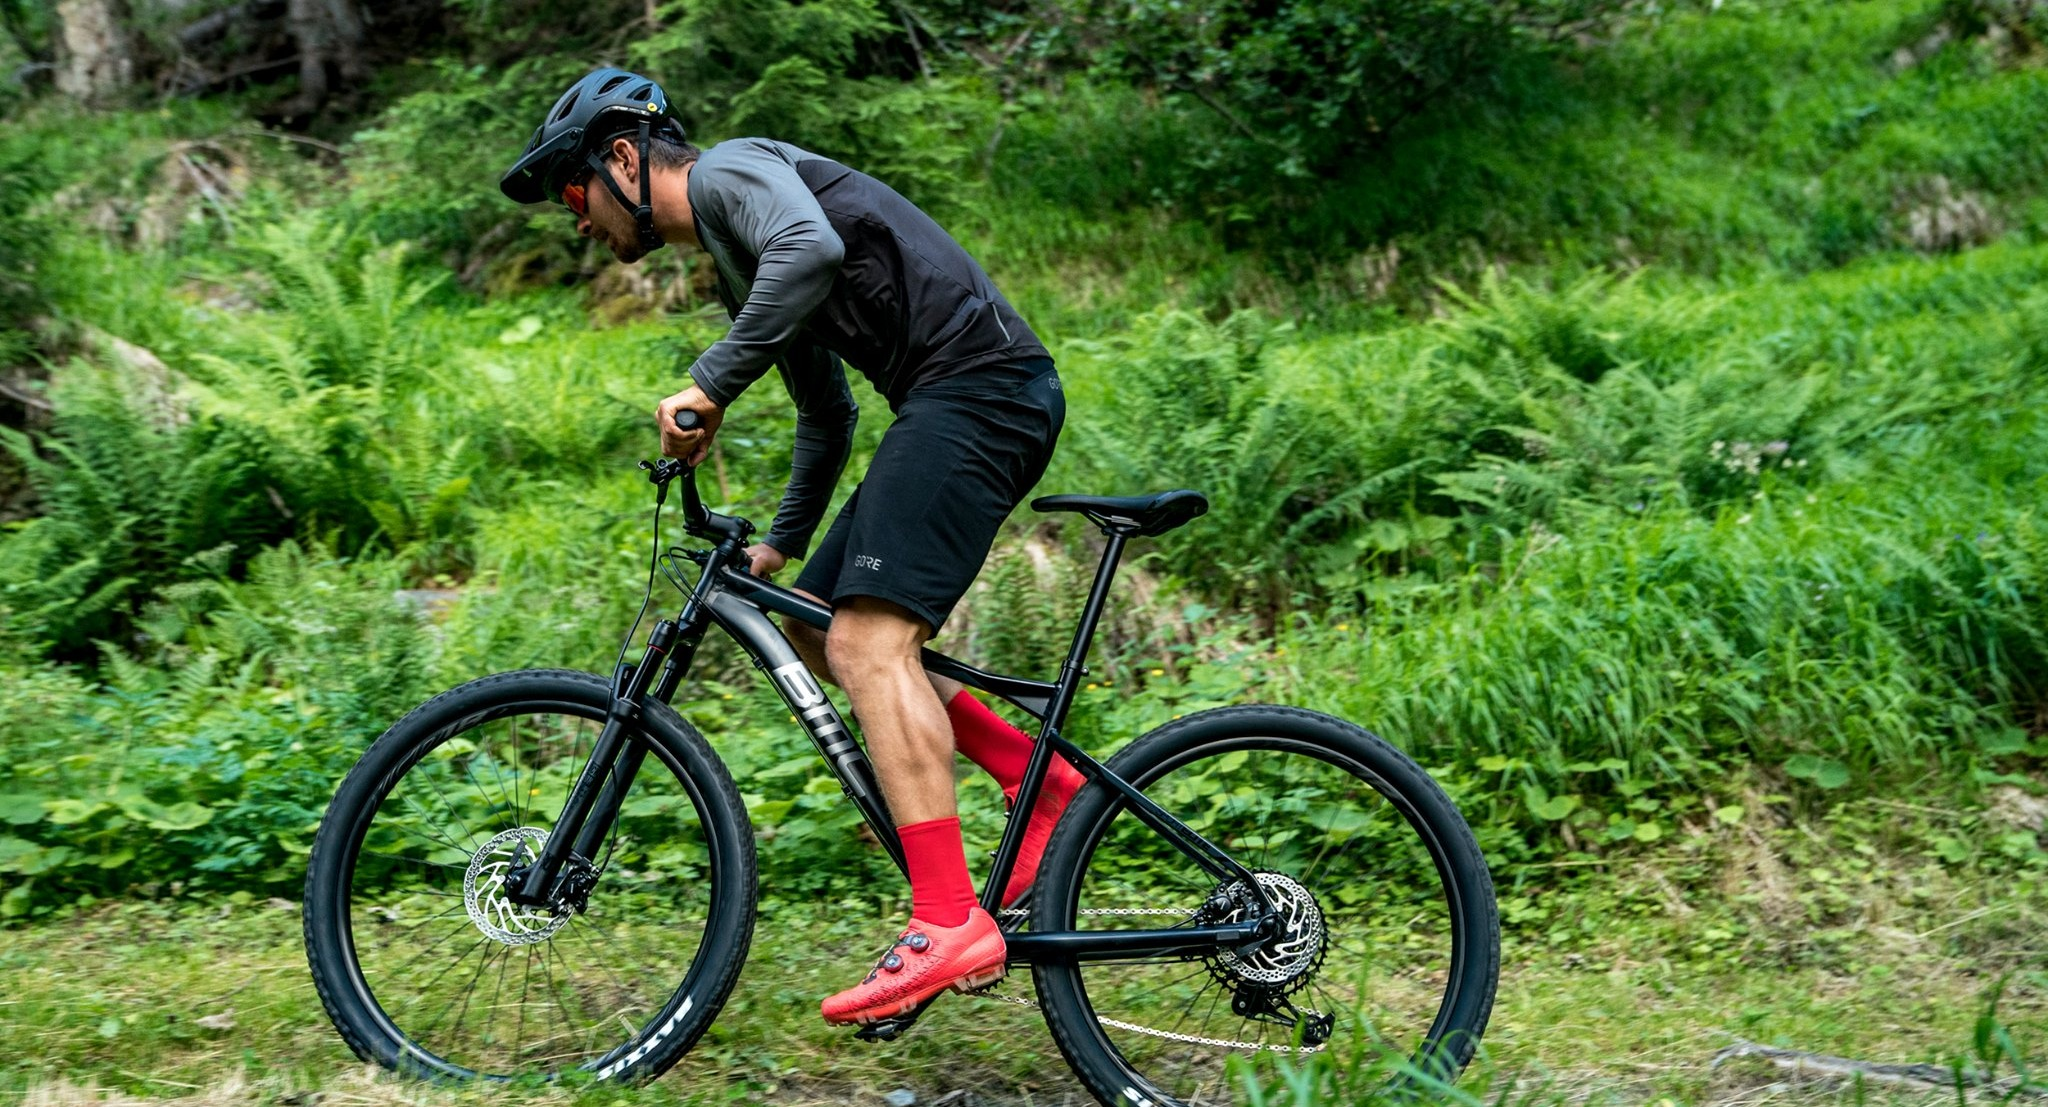 The BMC Sportelite is the perfect combination of performance and fun